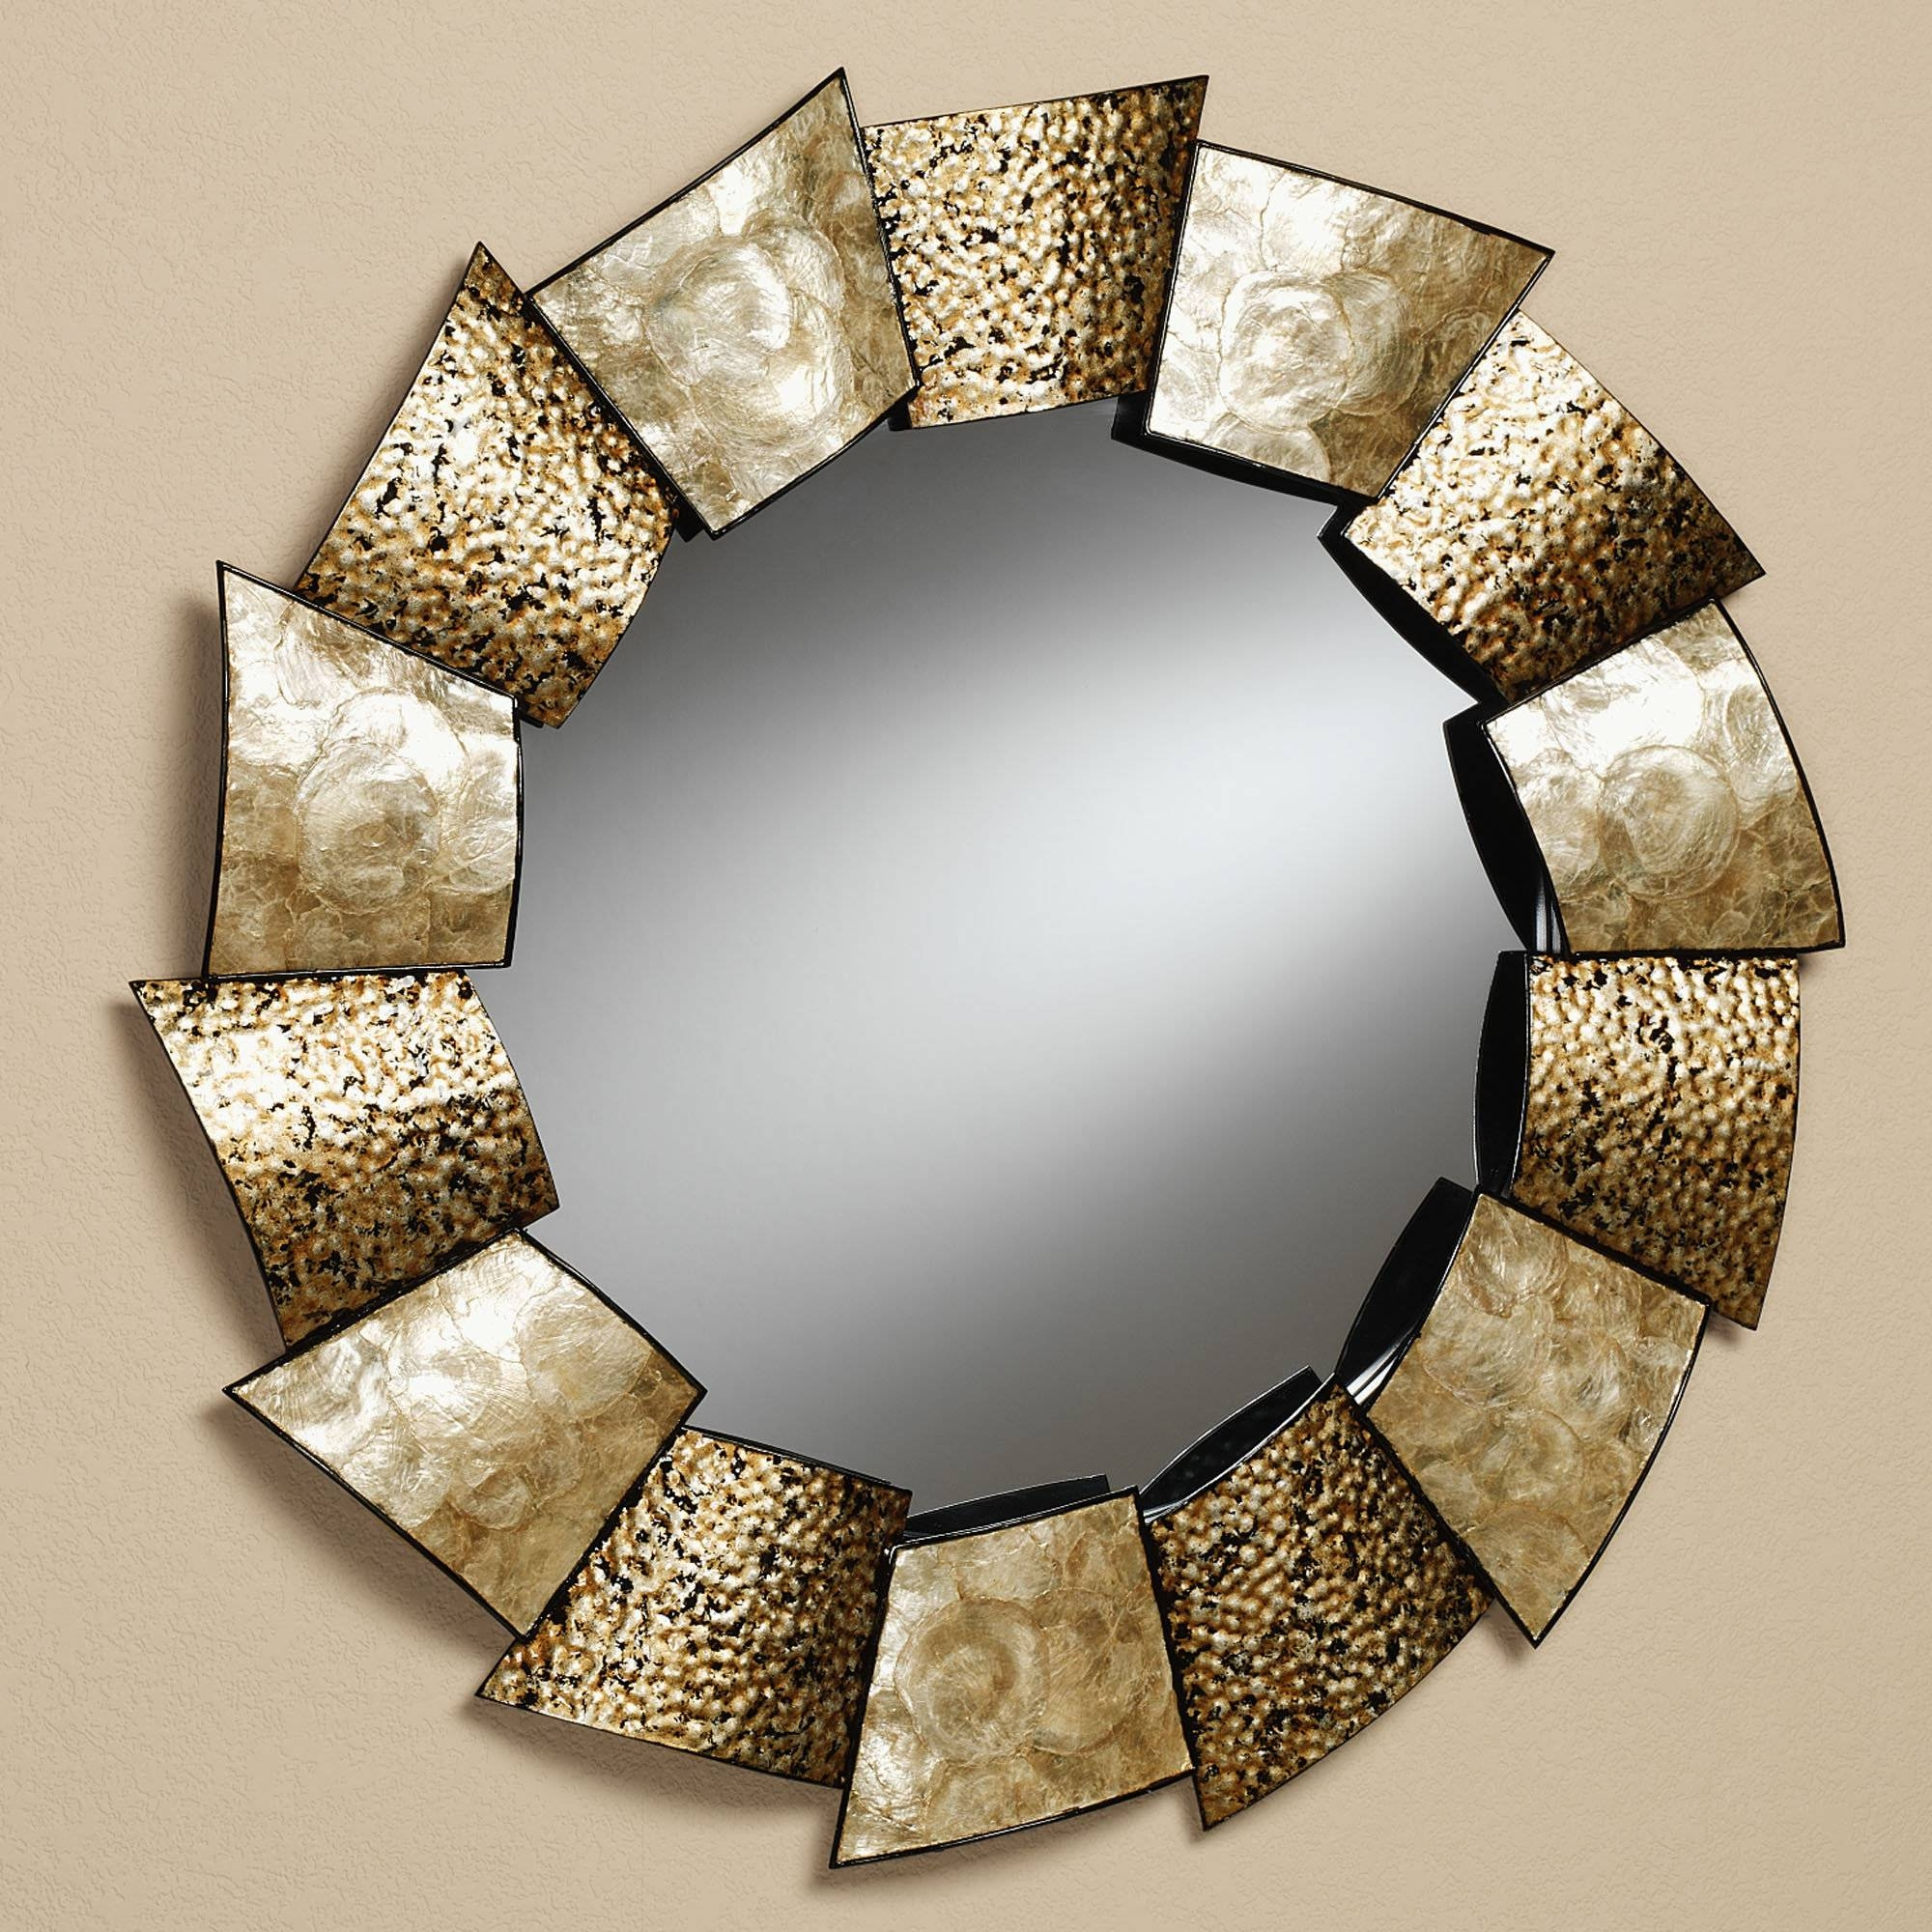 These Round Mirrors On The Wall Add A Focal Point In This Living with Unique Round Mirrors (Image 14 of 15)